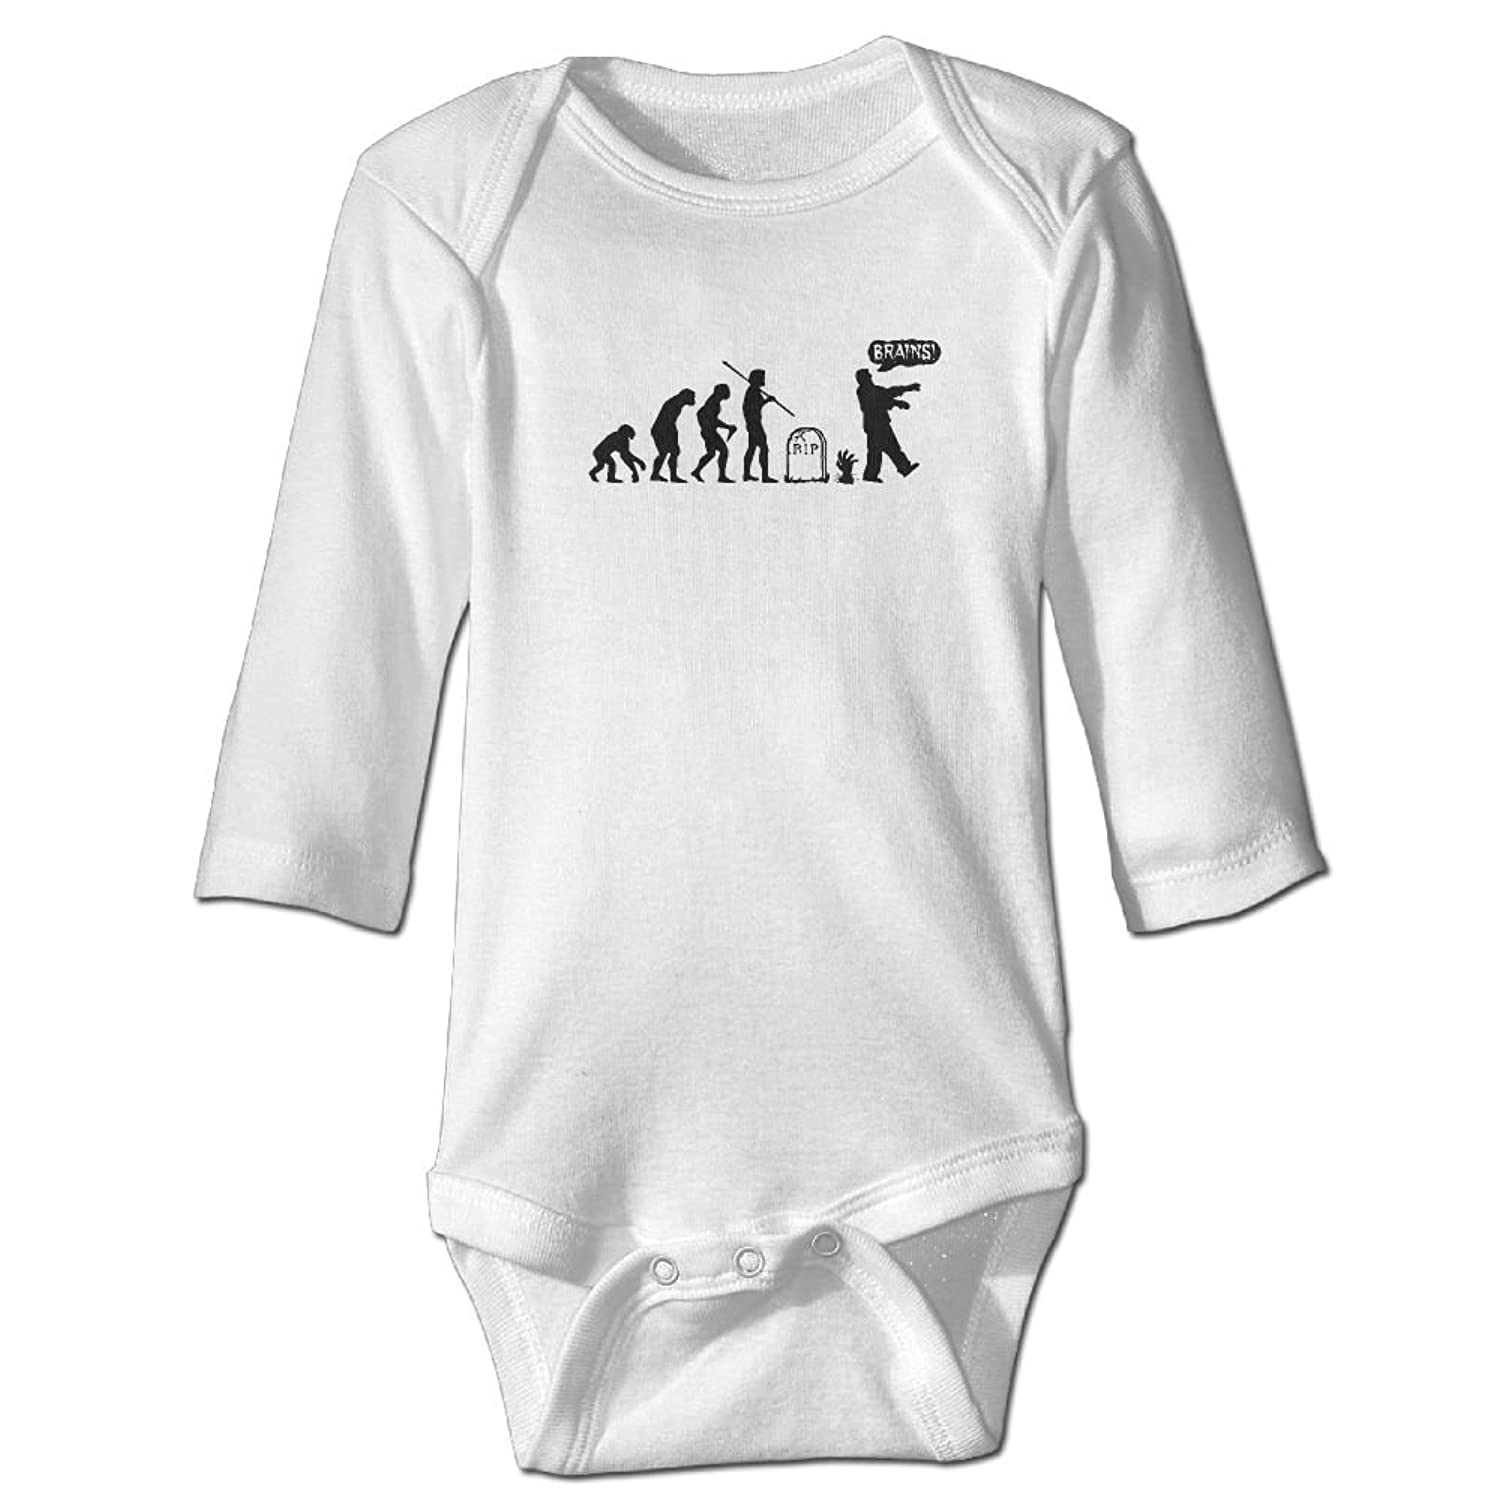 51433be0d376 DecorMyGarden Zombies Exist Funny Printed Romper Clothes For Baby 0-24  Months